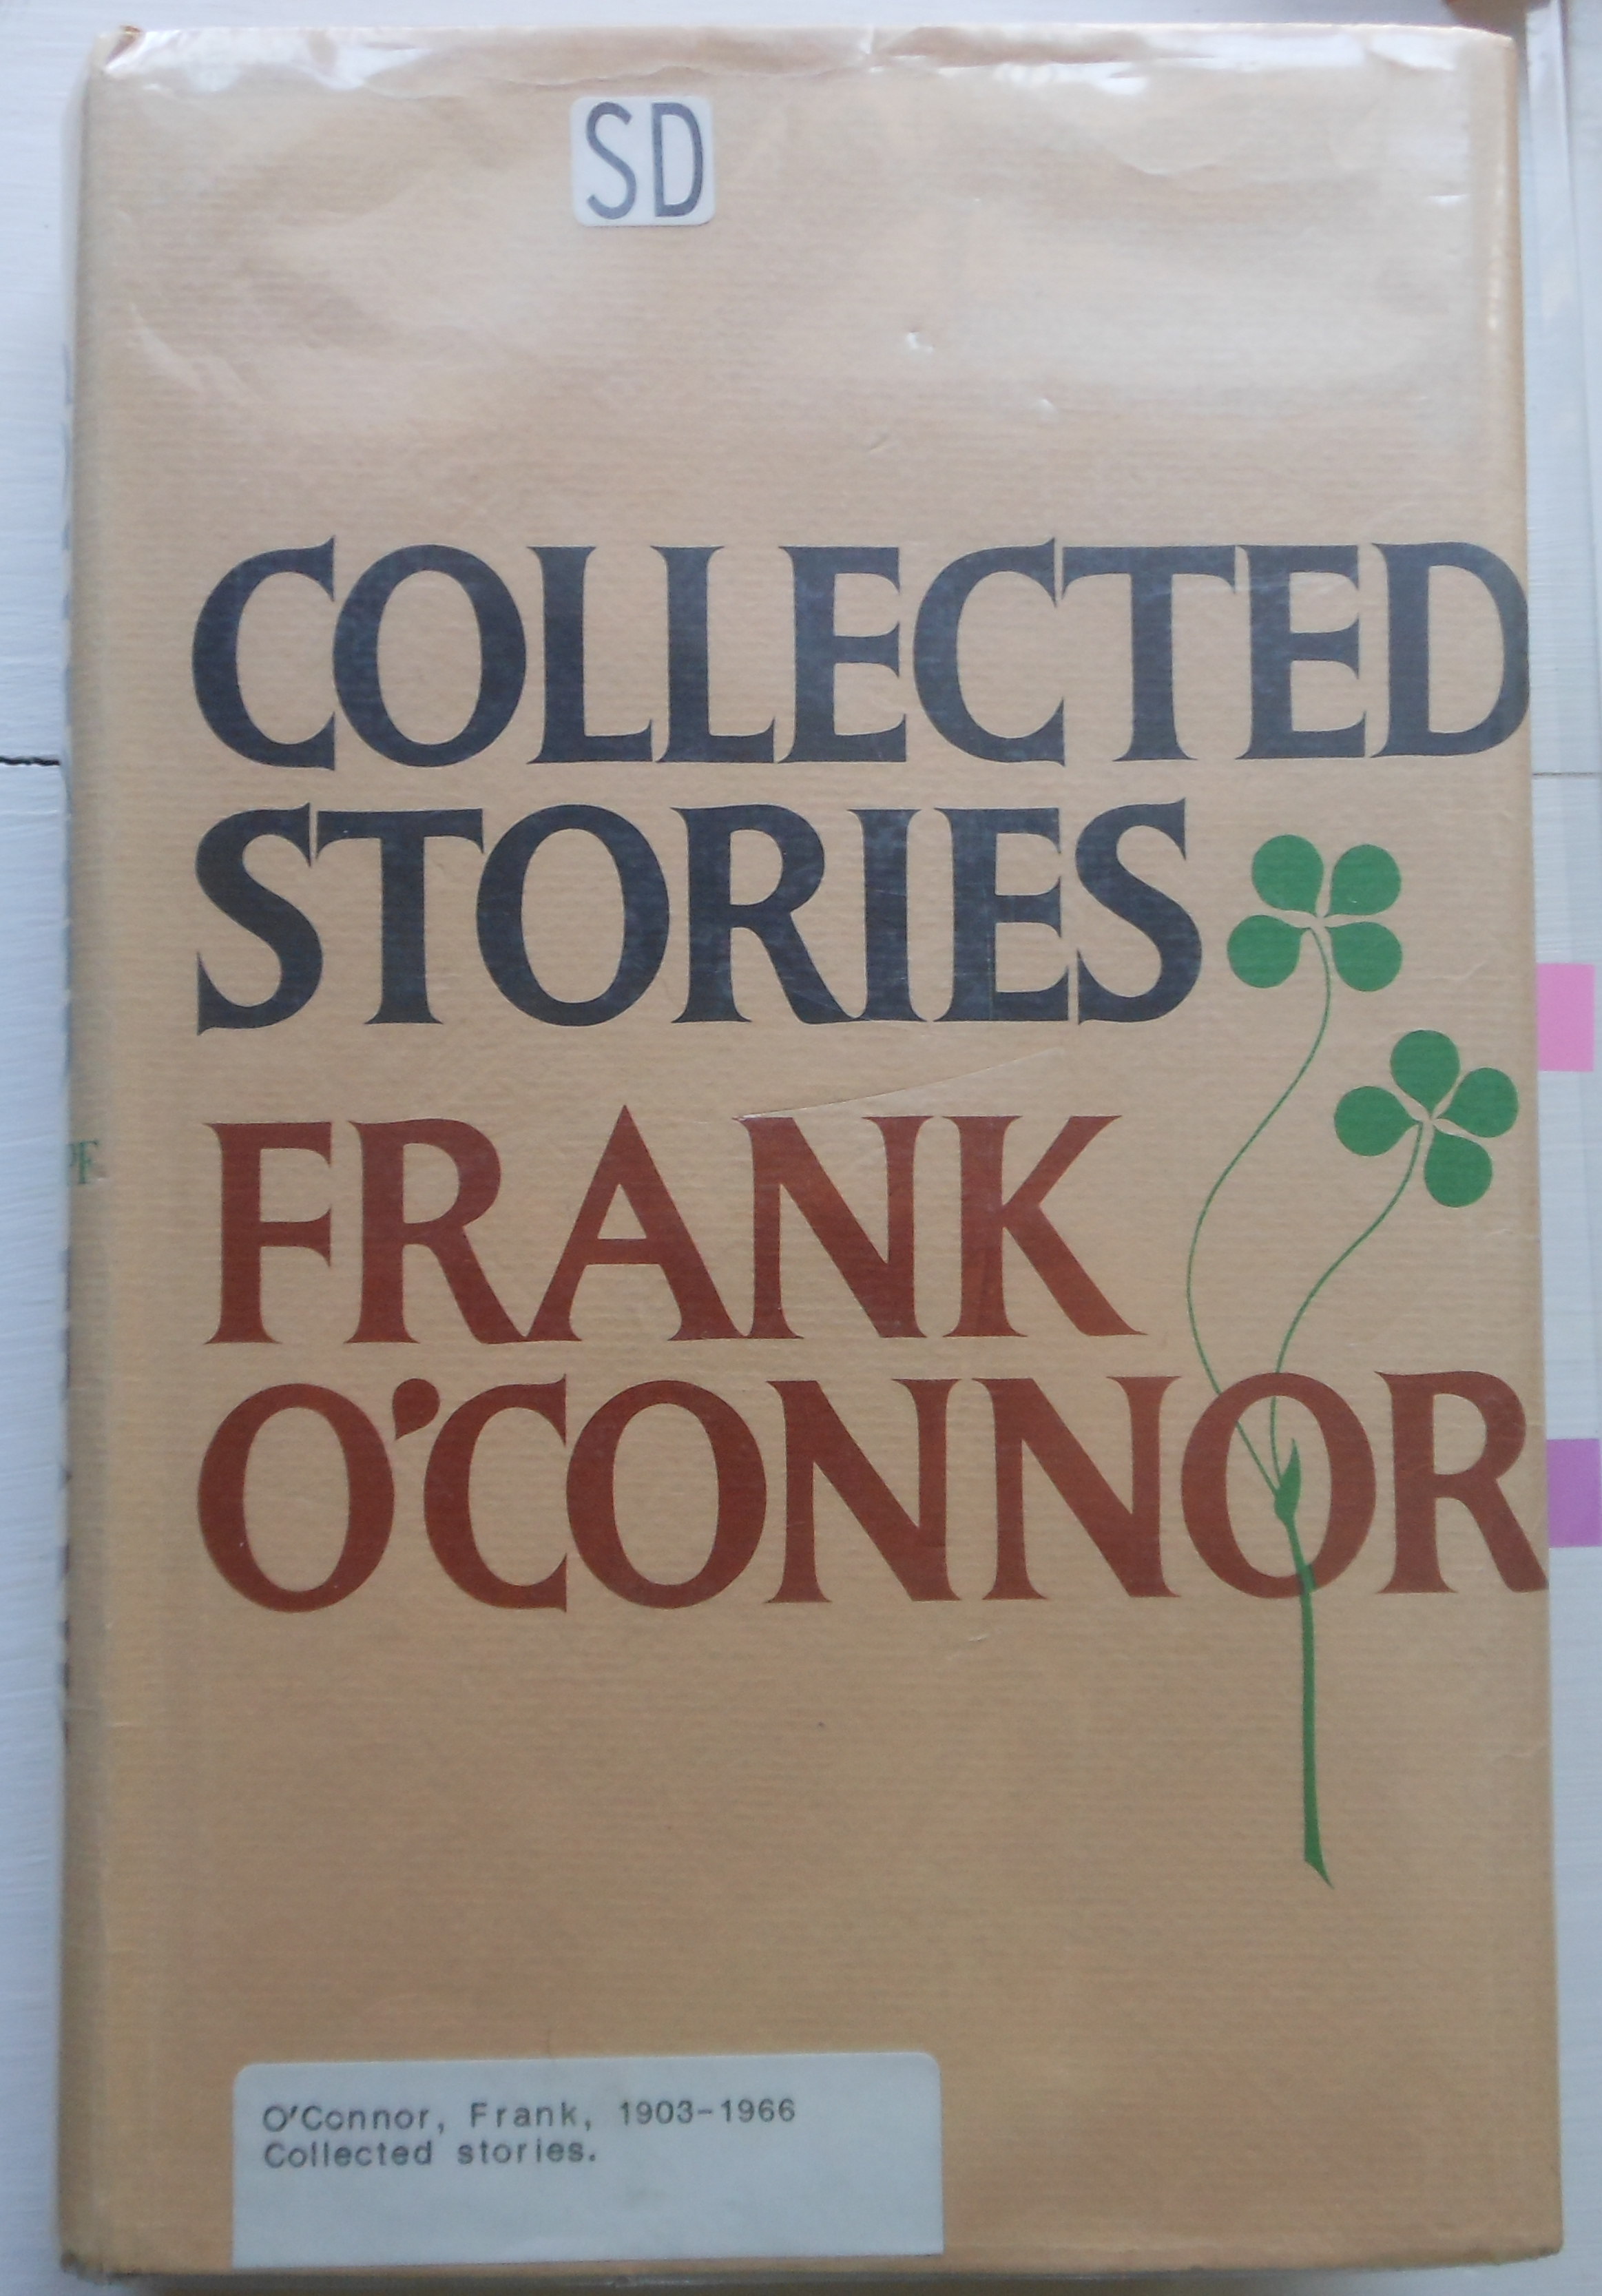 comparison of frank oconnor short stories Frank o'connor was a driven and prodigious writer 1960 as early as 1936 in o' connor's writing career, the irish times declared that there was 'nothing to be gained by comparing his work with that of other masters of the short story: he is master among masters himself'[2] following the publication of his debut collection in.